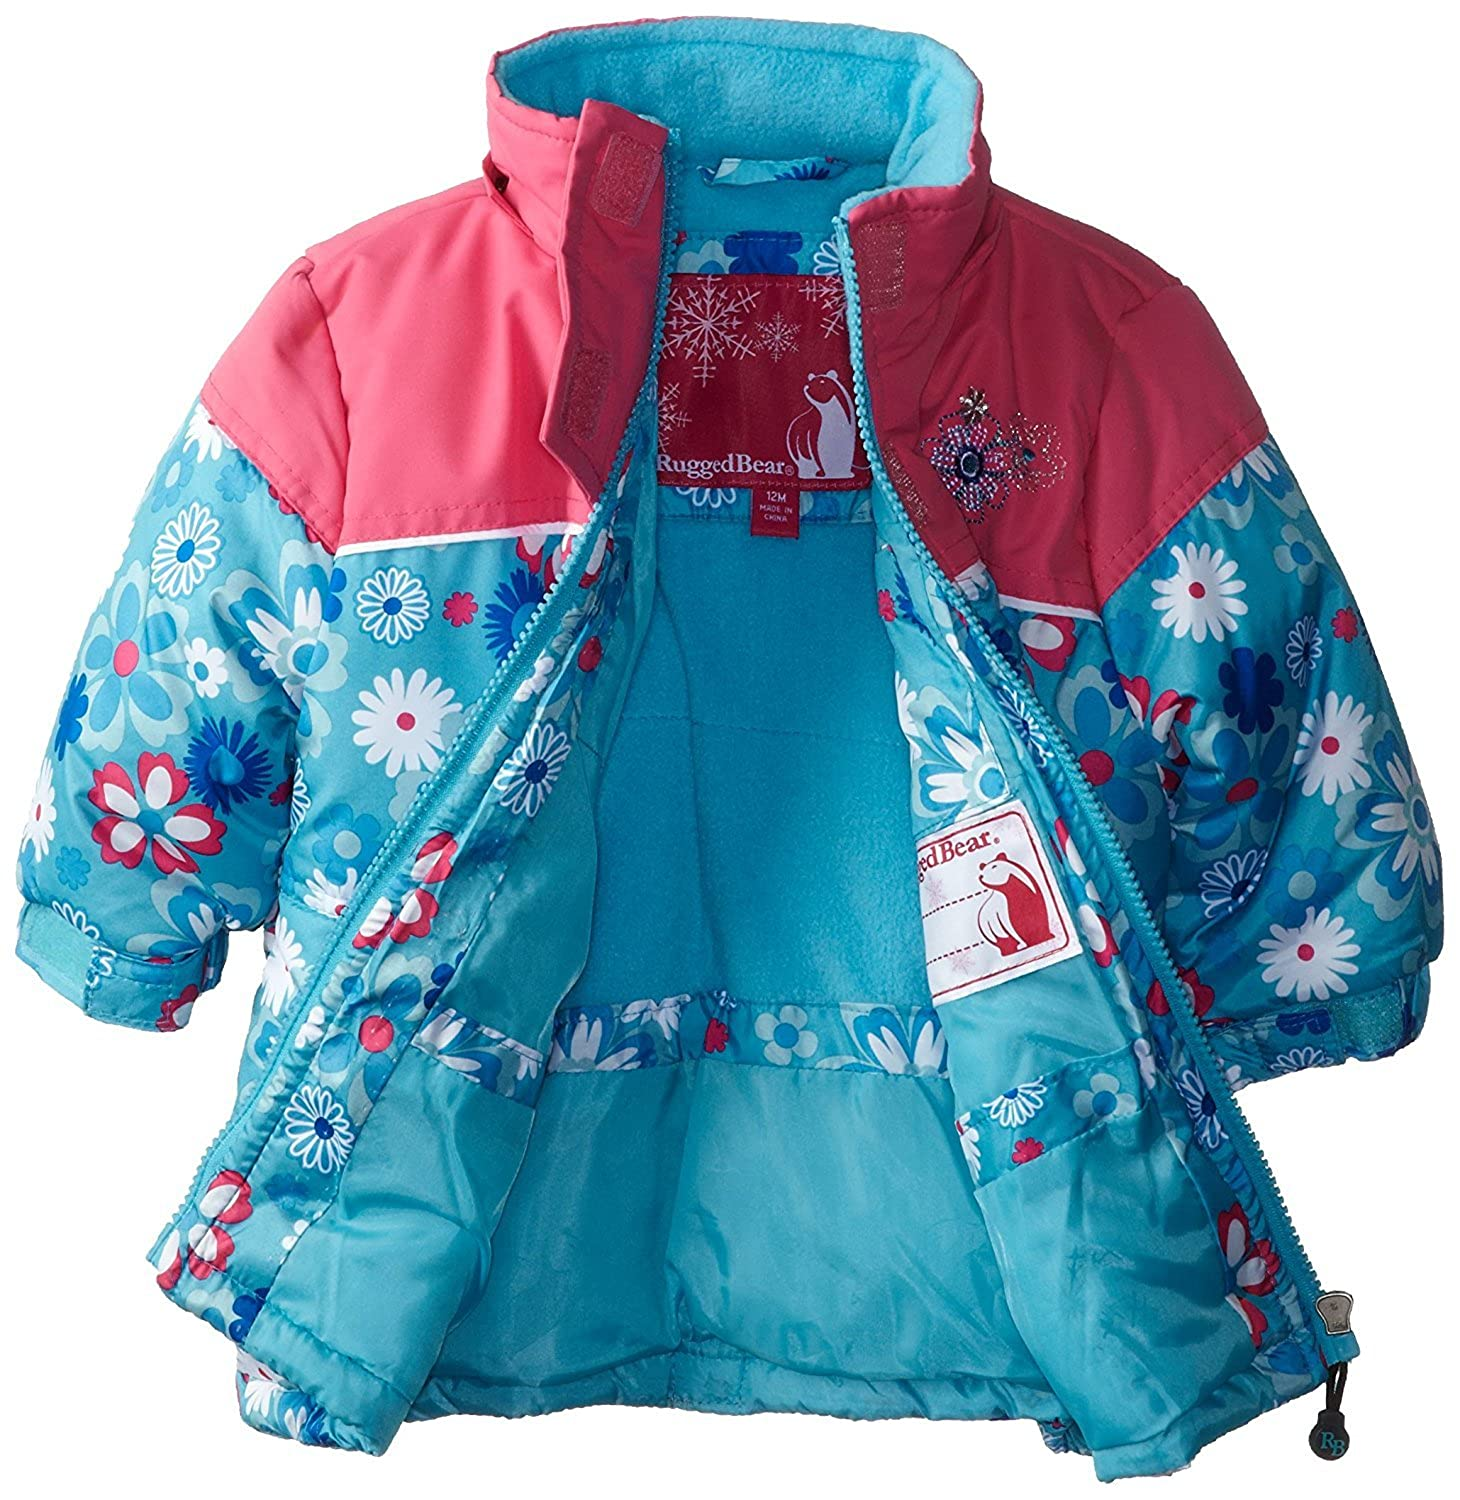 Rugged Bear Little Girls Floral Printed Lined Winter Hooded Jacket Coat,2T-6x